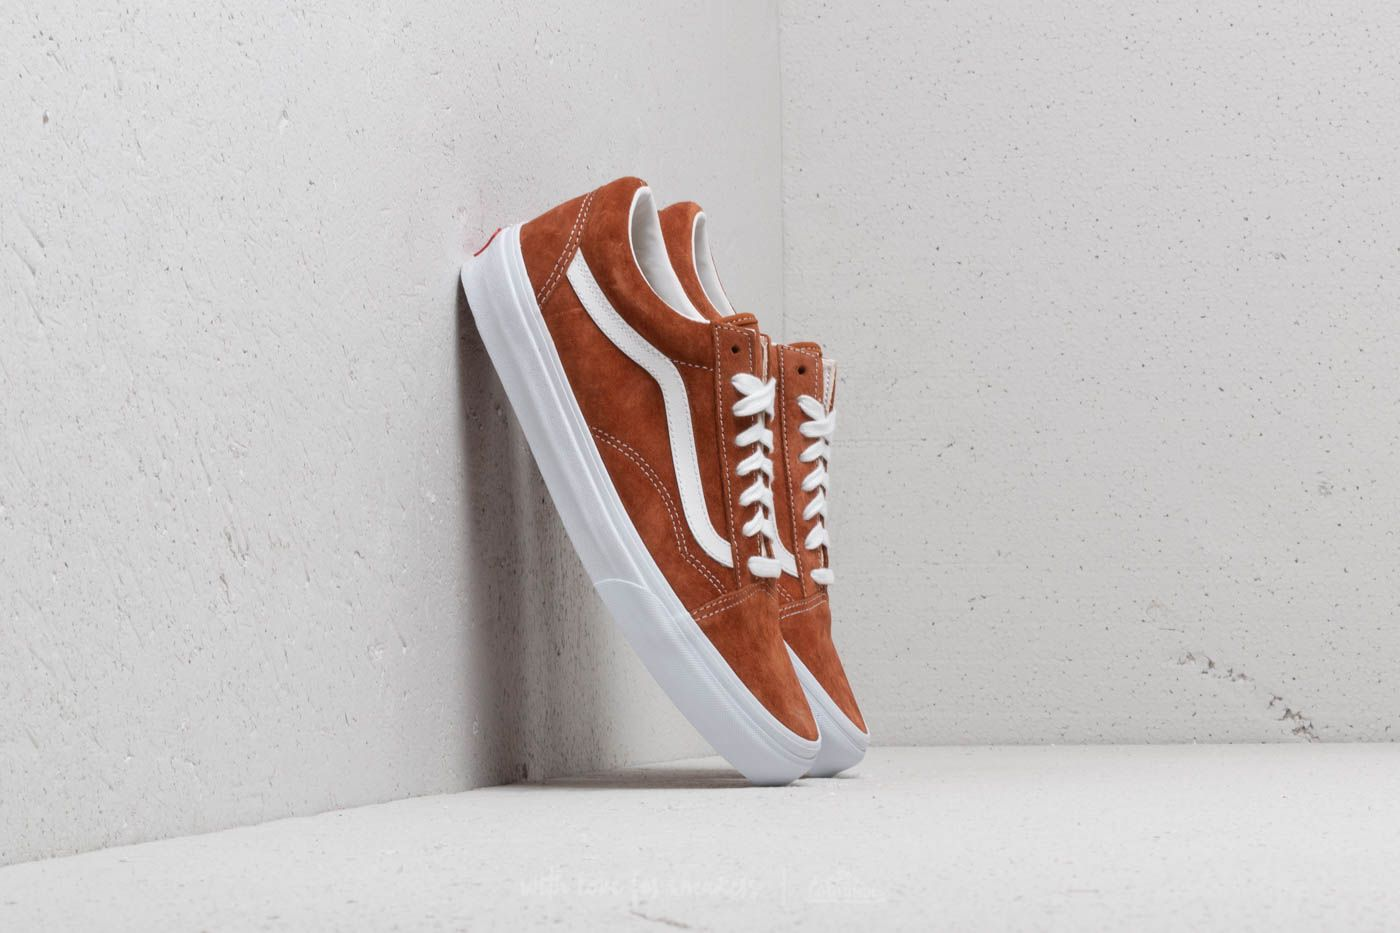 f775588509 Vans Old Skool (Pig Suede) Leather Brown